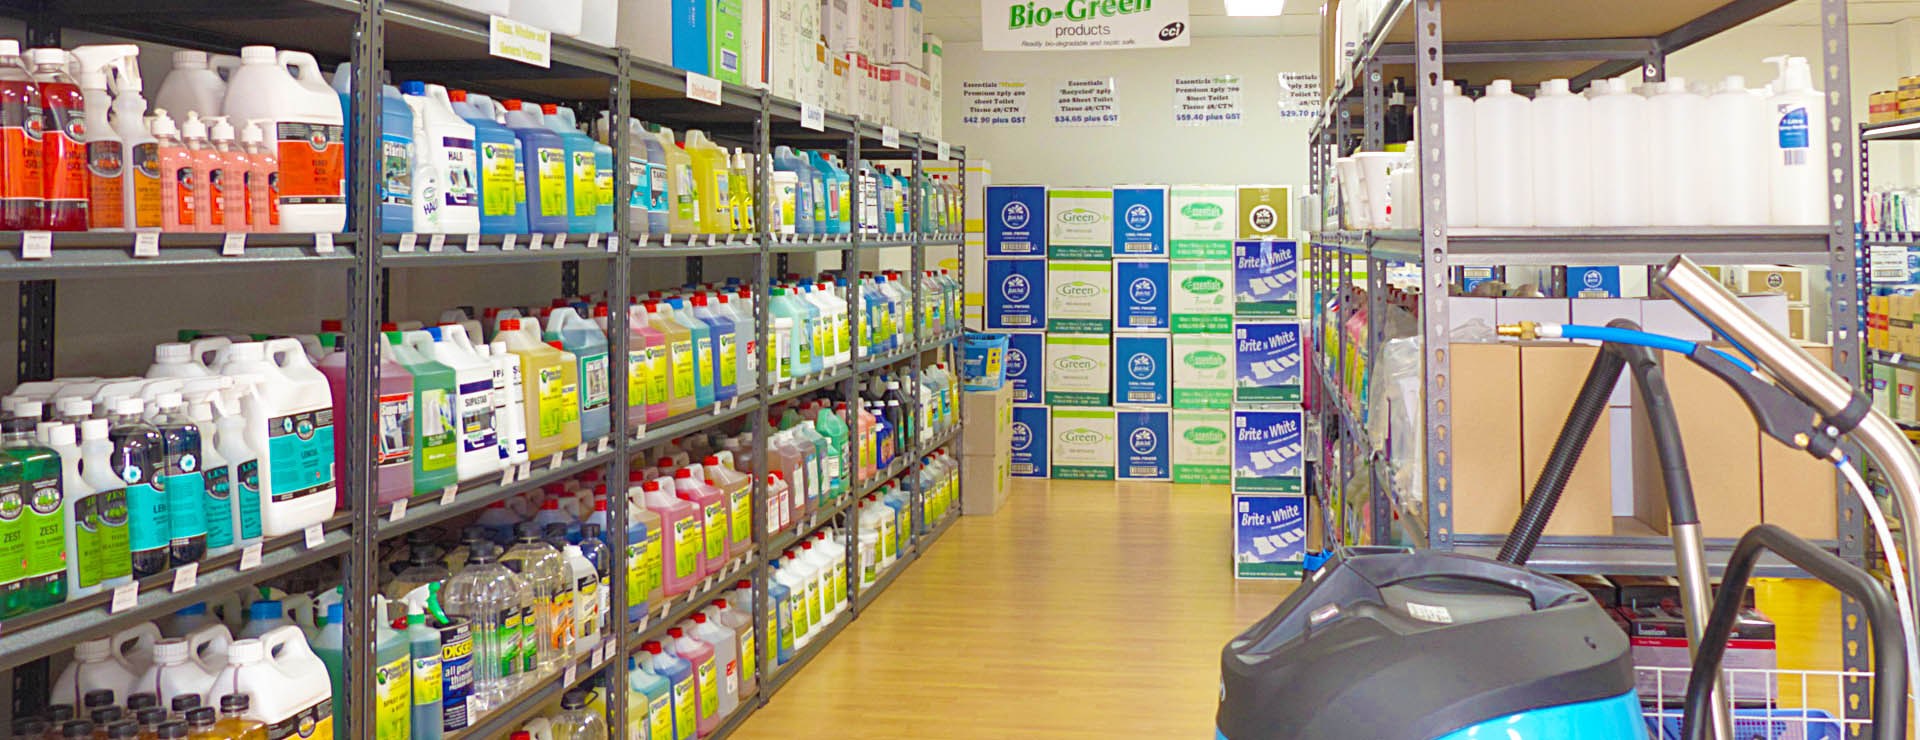 Floor Cloths For Sale Brisbane Wholesale Cleaning Supplies U2013 Fast Shipping  U2013 Open 7 Days .